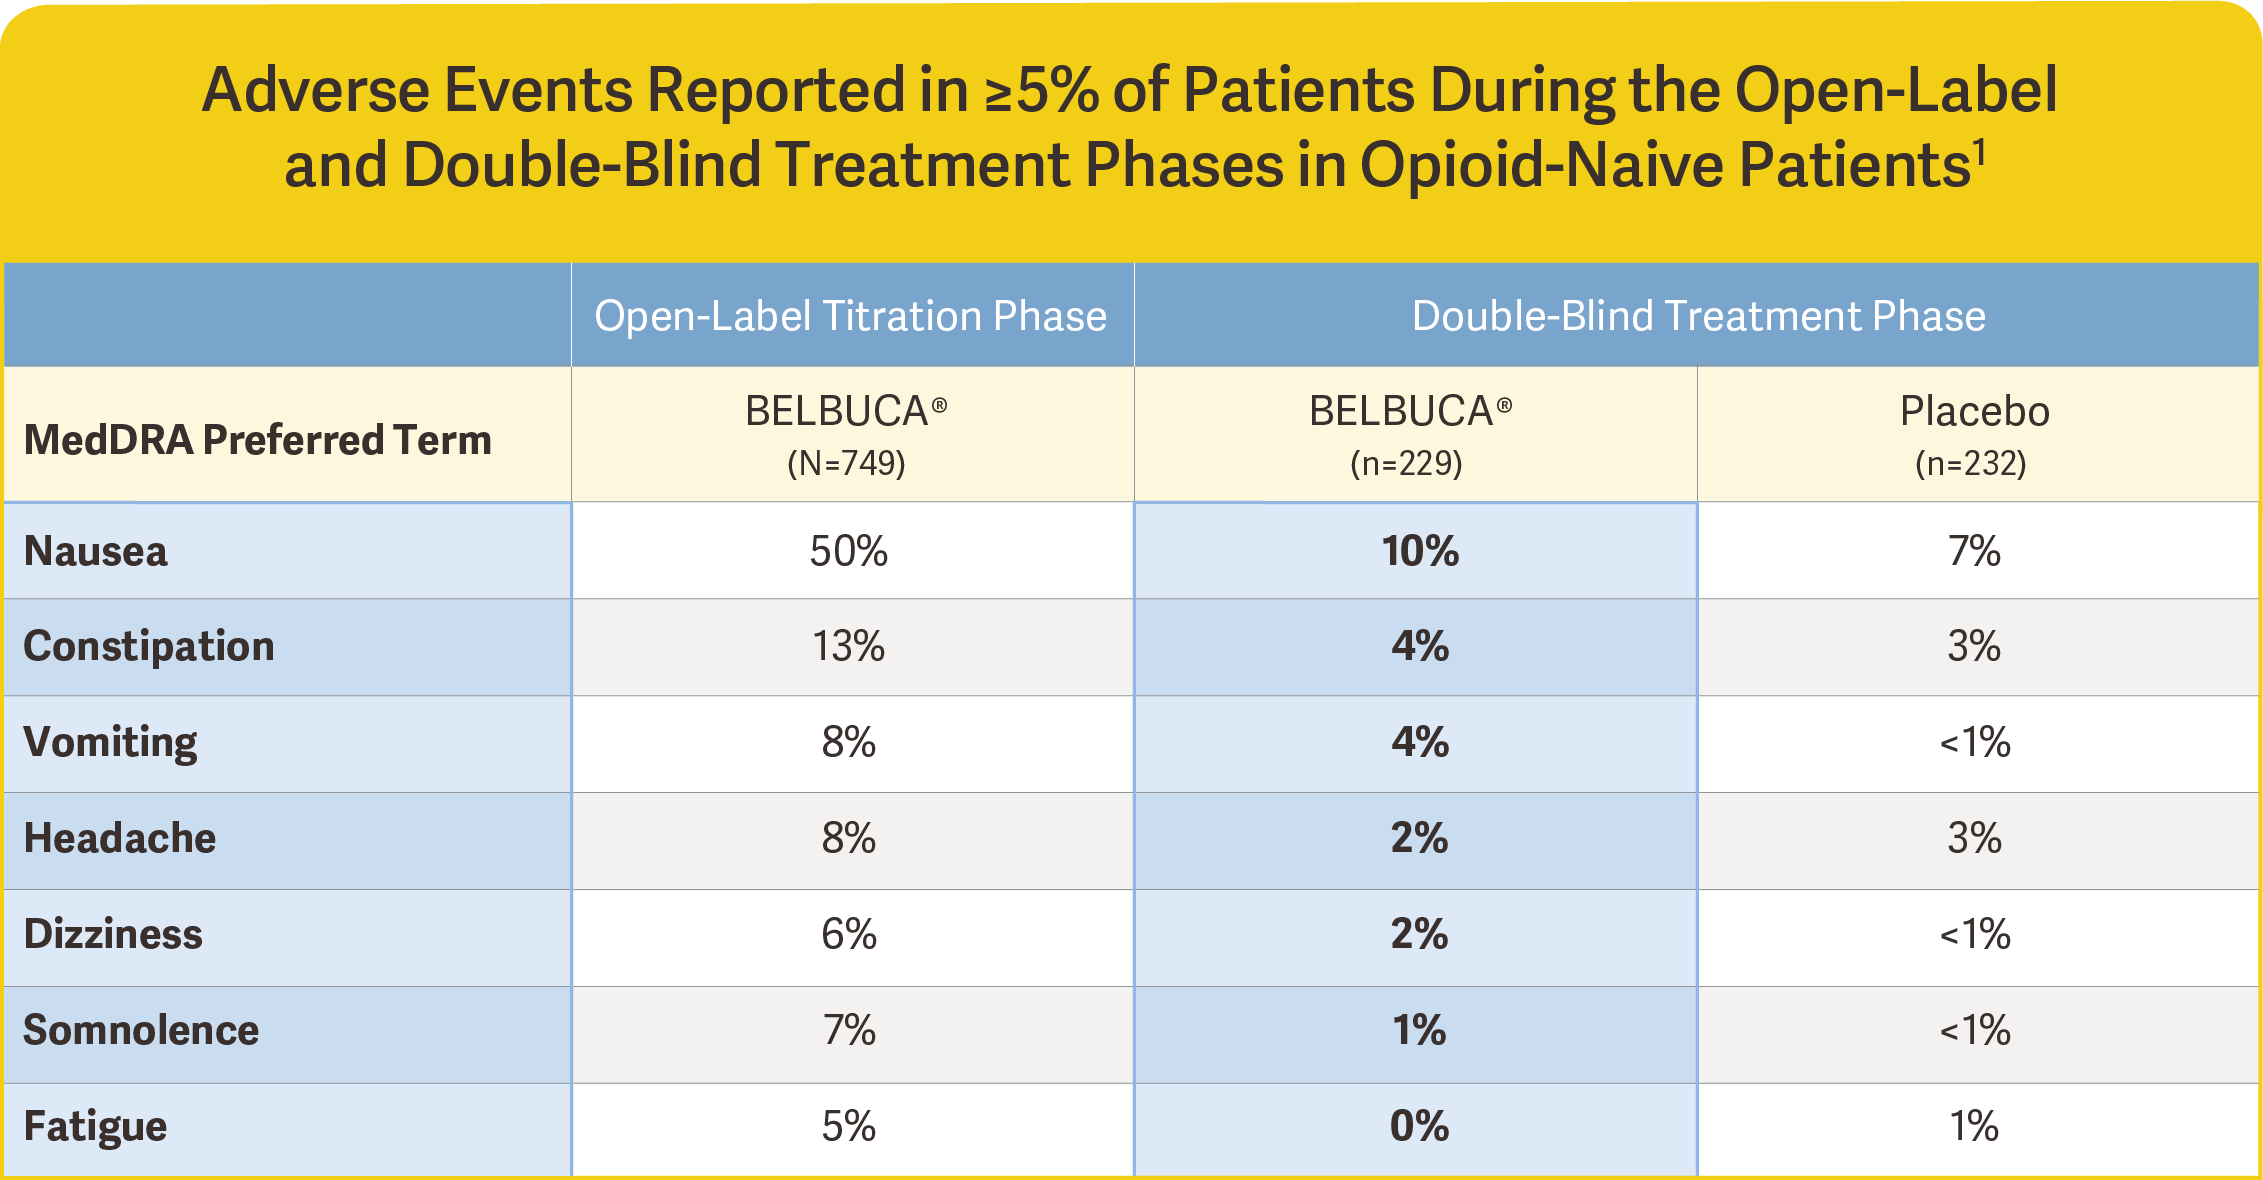 belbuca clinical data adverse events reported opioid-naive patients